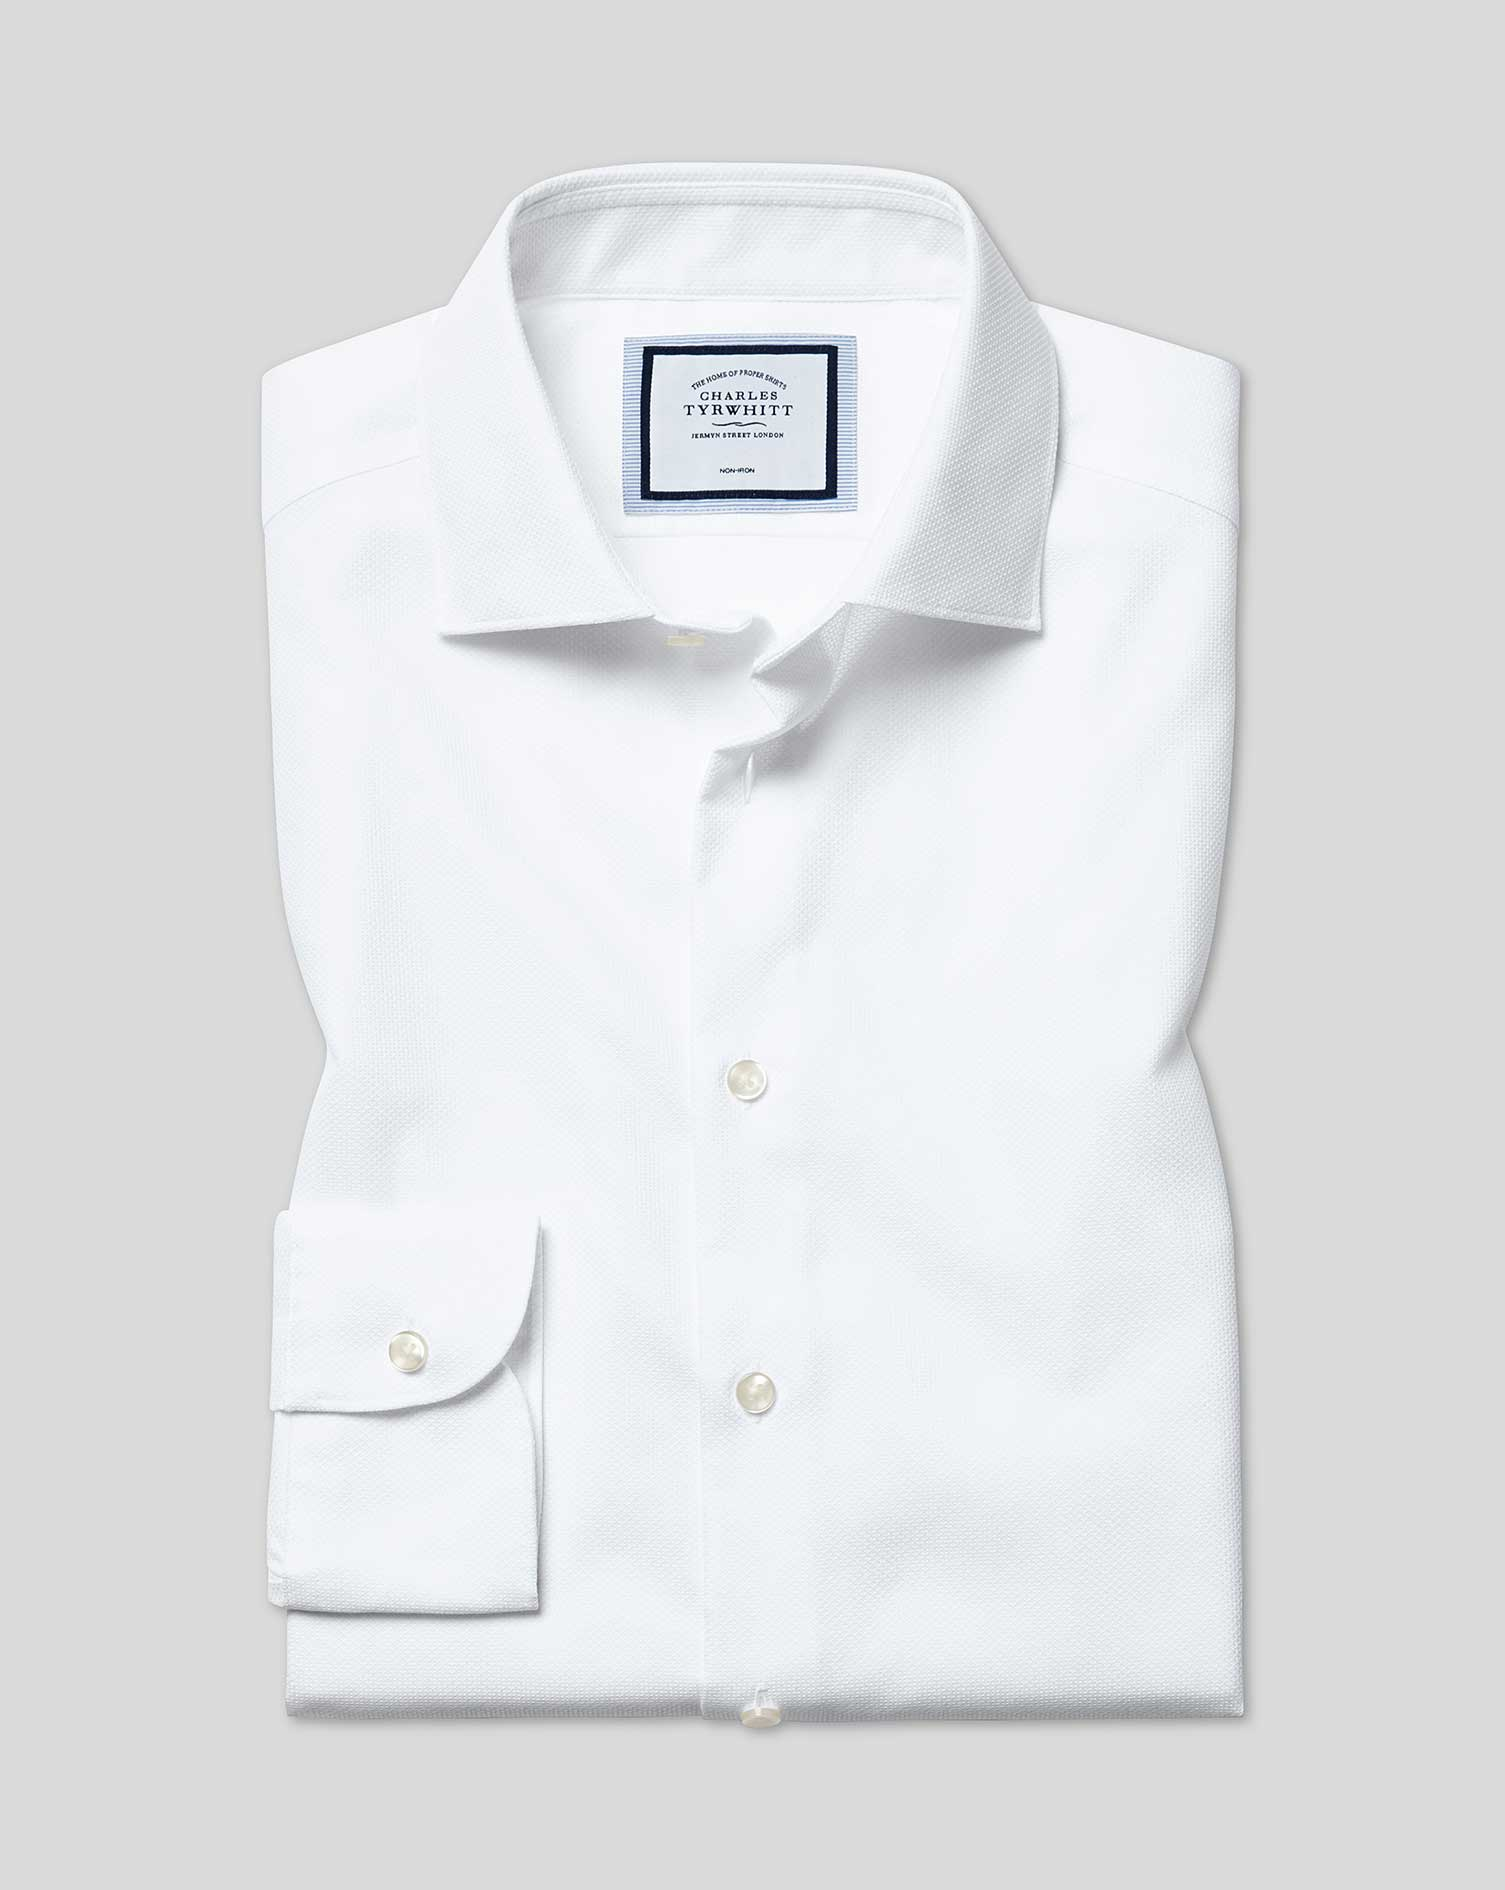 Extra Slim Fit Non-Iron Natural Stretch White Cotton Formal Shirt Single Cuff Size 17/35 by Charles